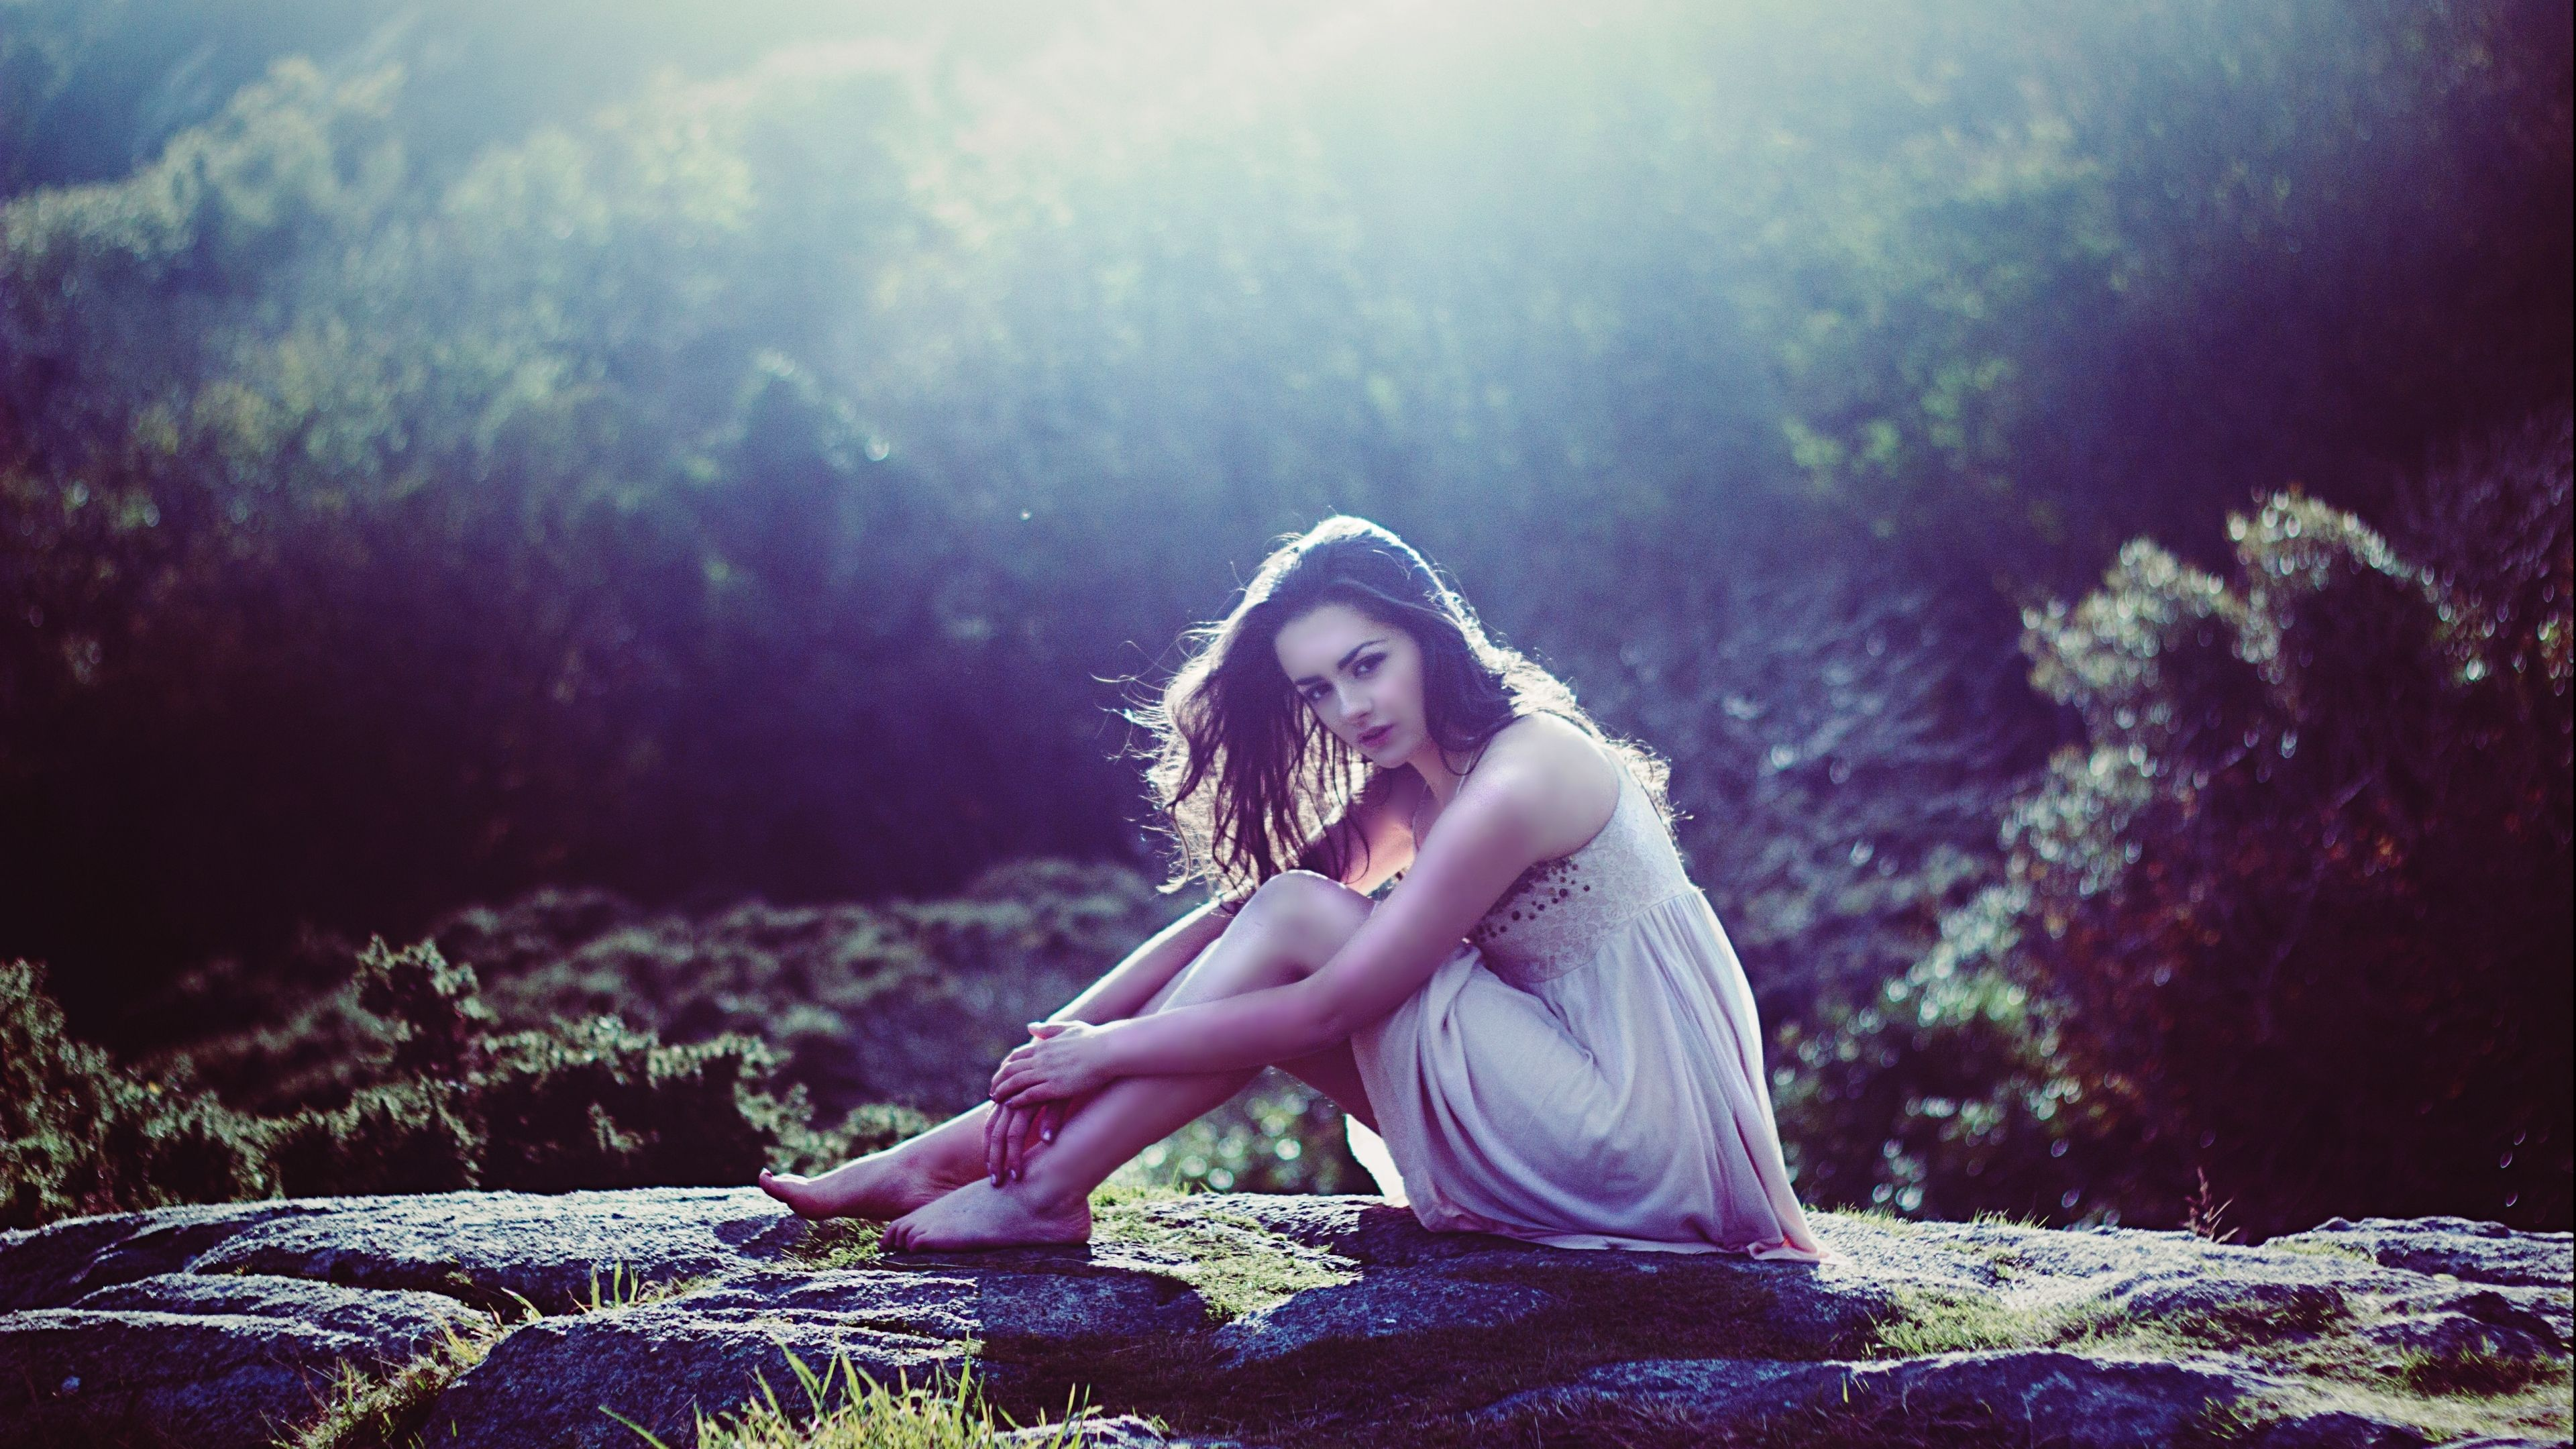 Beautiful Girl Nature K Photography Hd Summer Poems Nature Girl Feeling Lonely